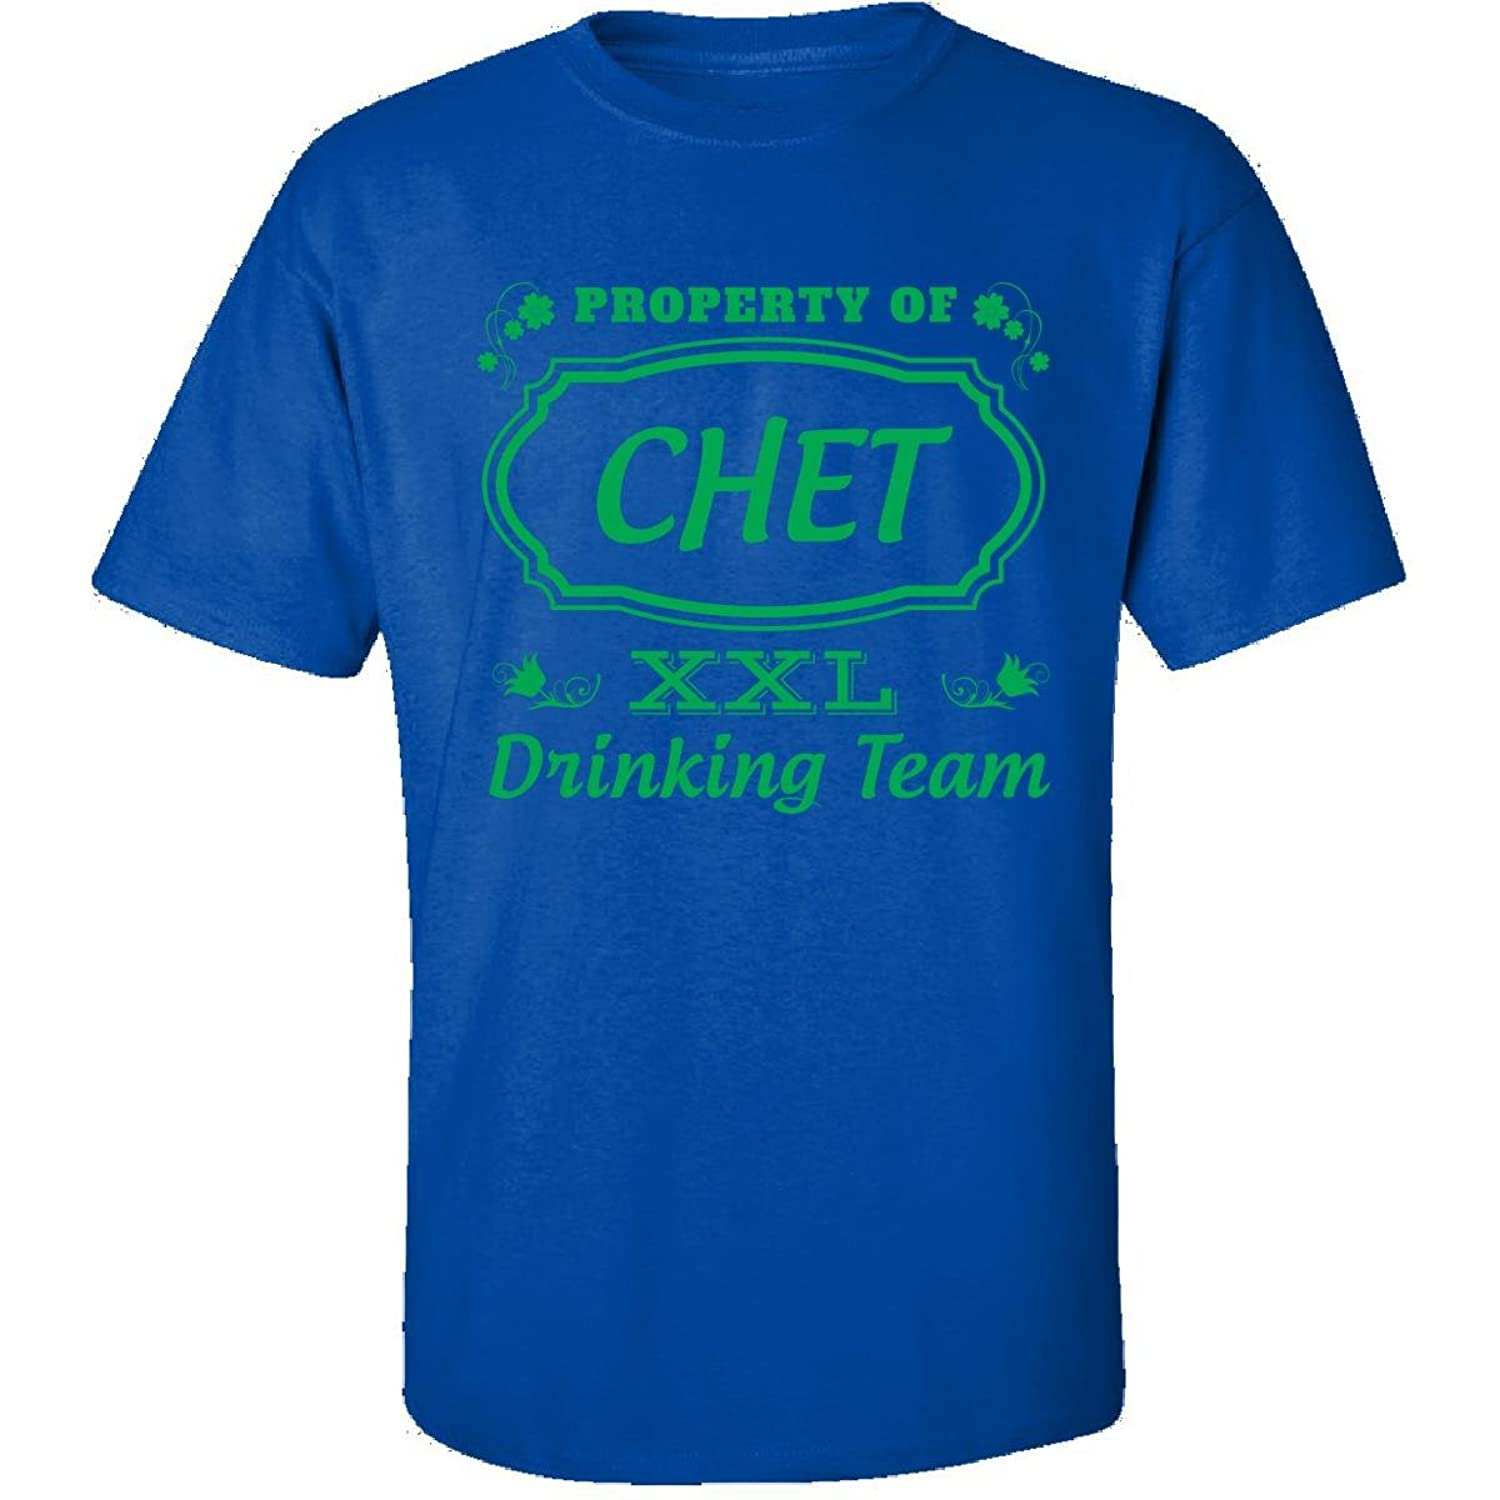 Property Of Chet St Patrick Day Beer Drinking Team - Adult Shirt